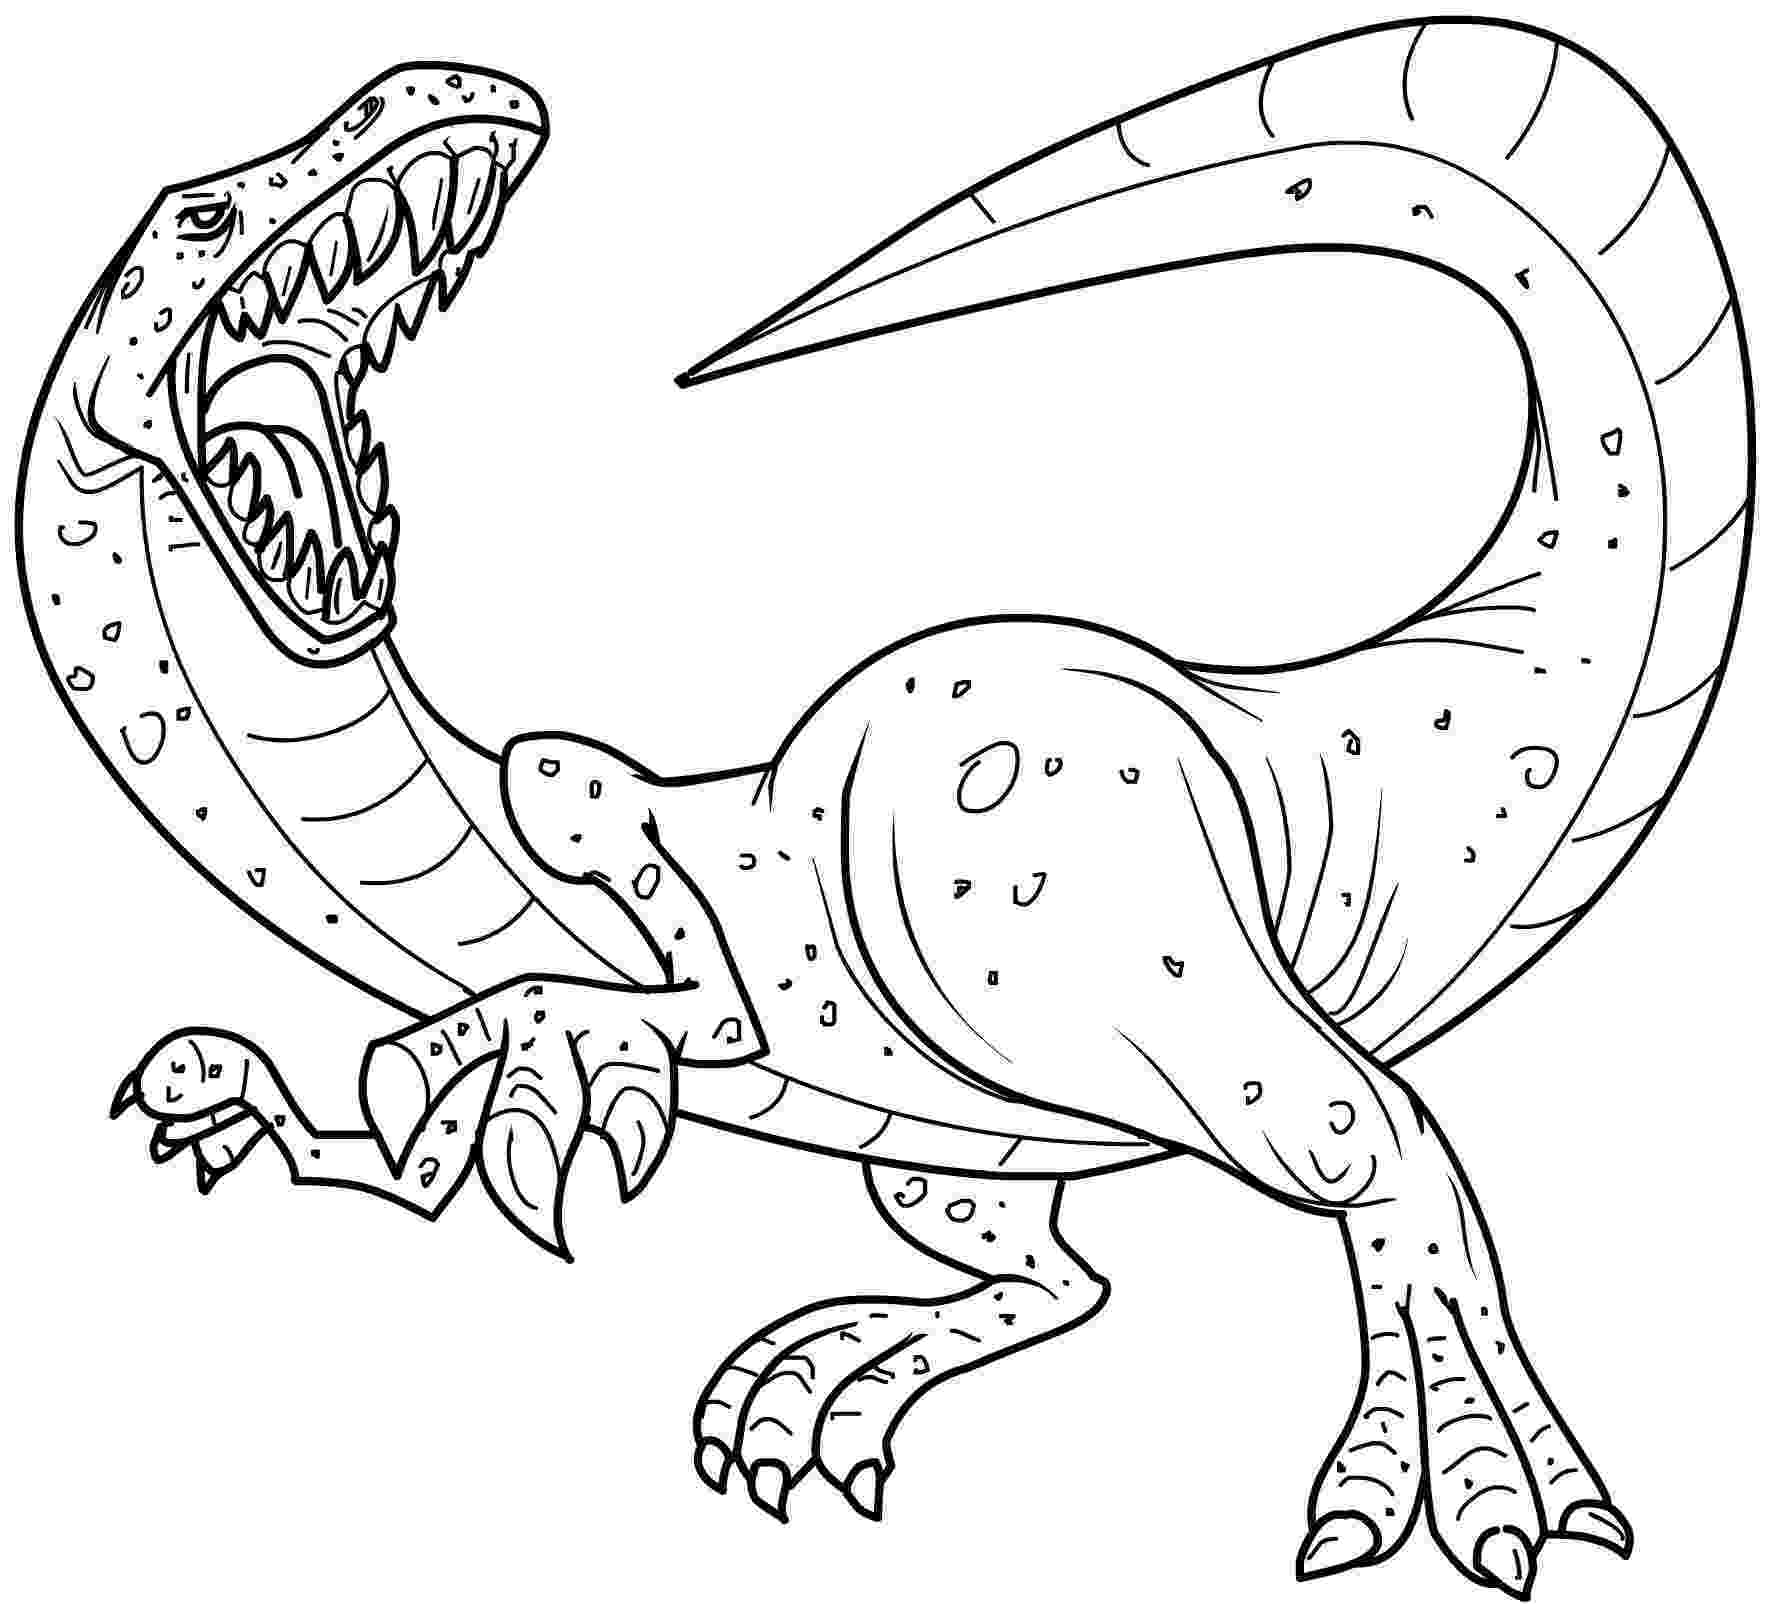 dinosaur coloring pages free printable coloring dinosaur coloring pages pages dinosaur coloring free printable